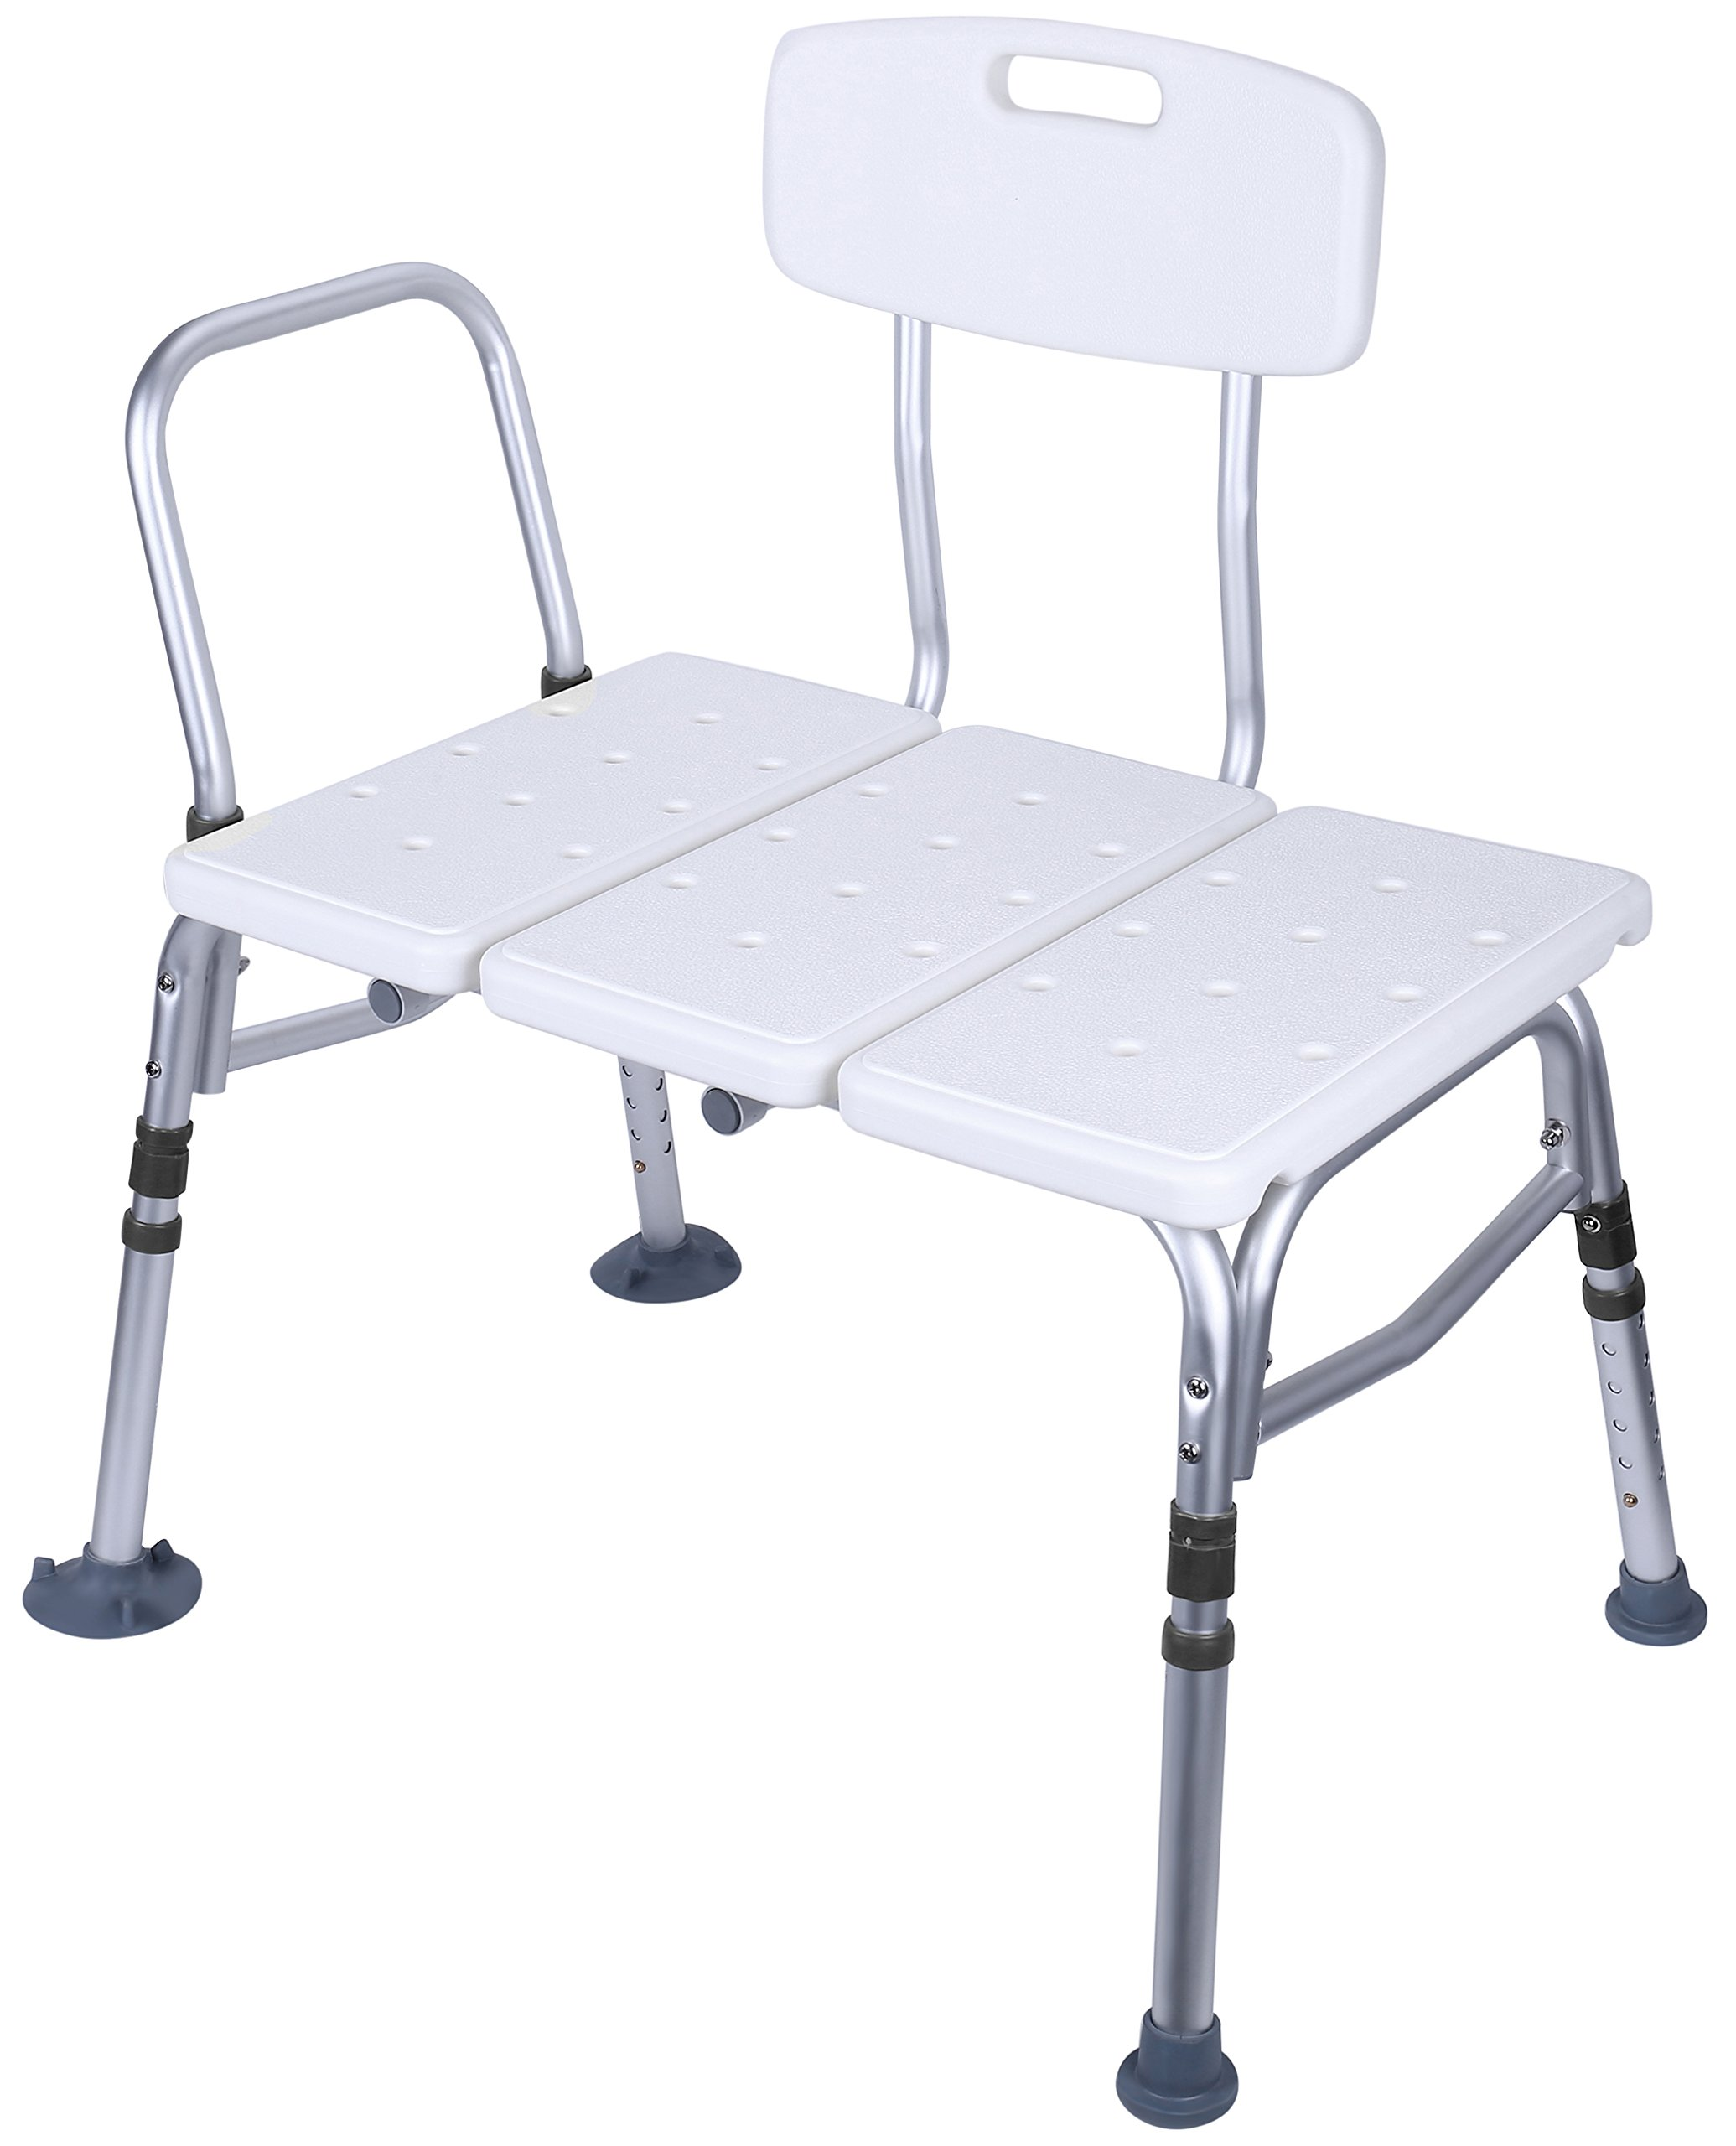 BalanceFrom Adjustable Height Bath Shower Tub Bench Chair with Adjustable Backrest